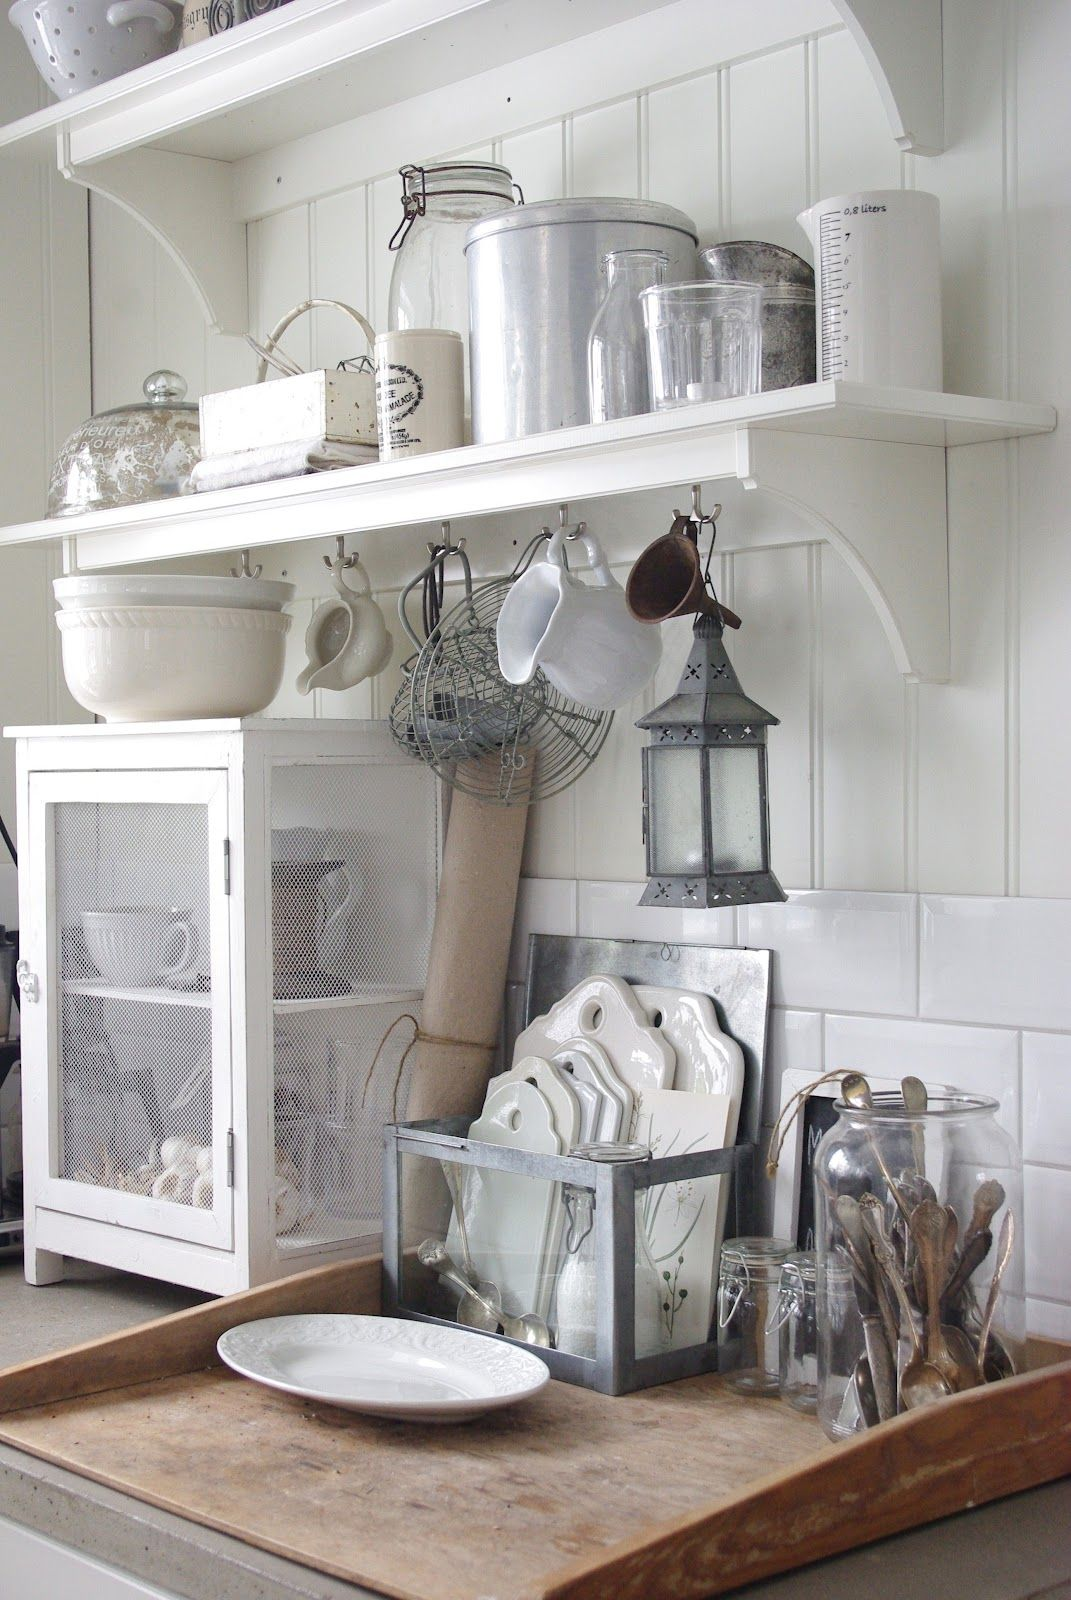 Pin By Valery Fox On Decor Ideas Chic Kitchen Kitchen Design Decor Shabby Chic Kitchen